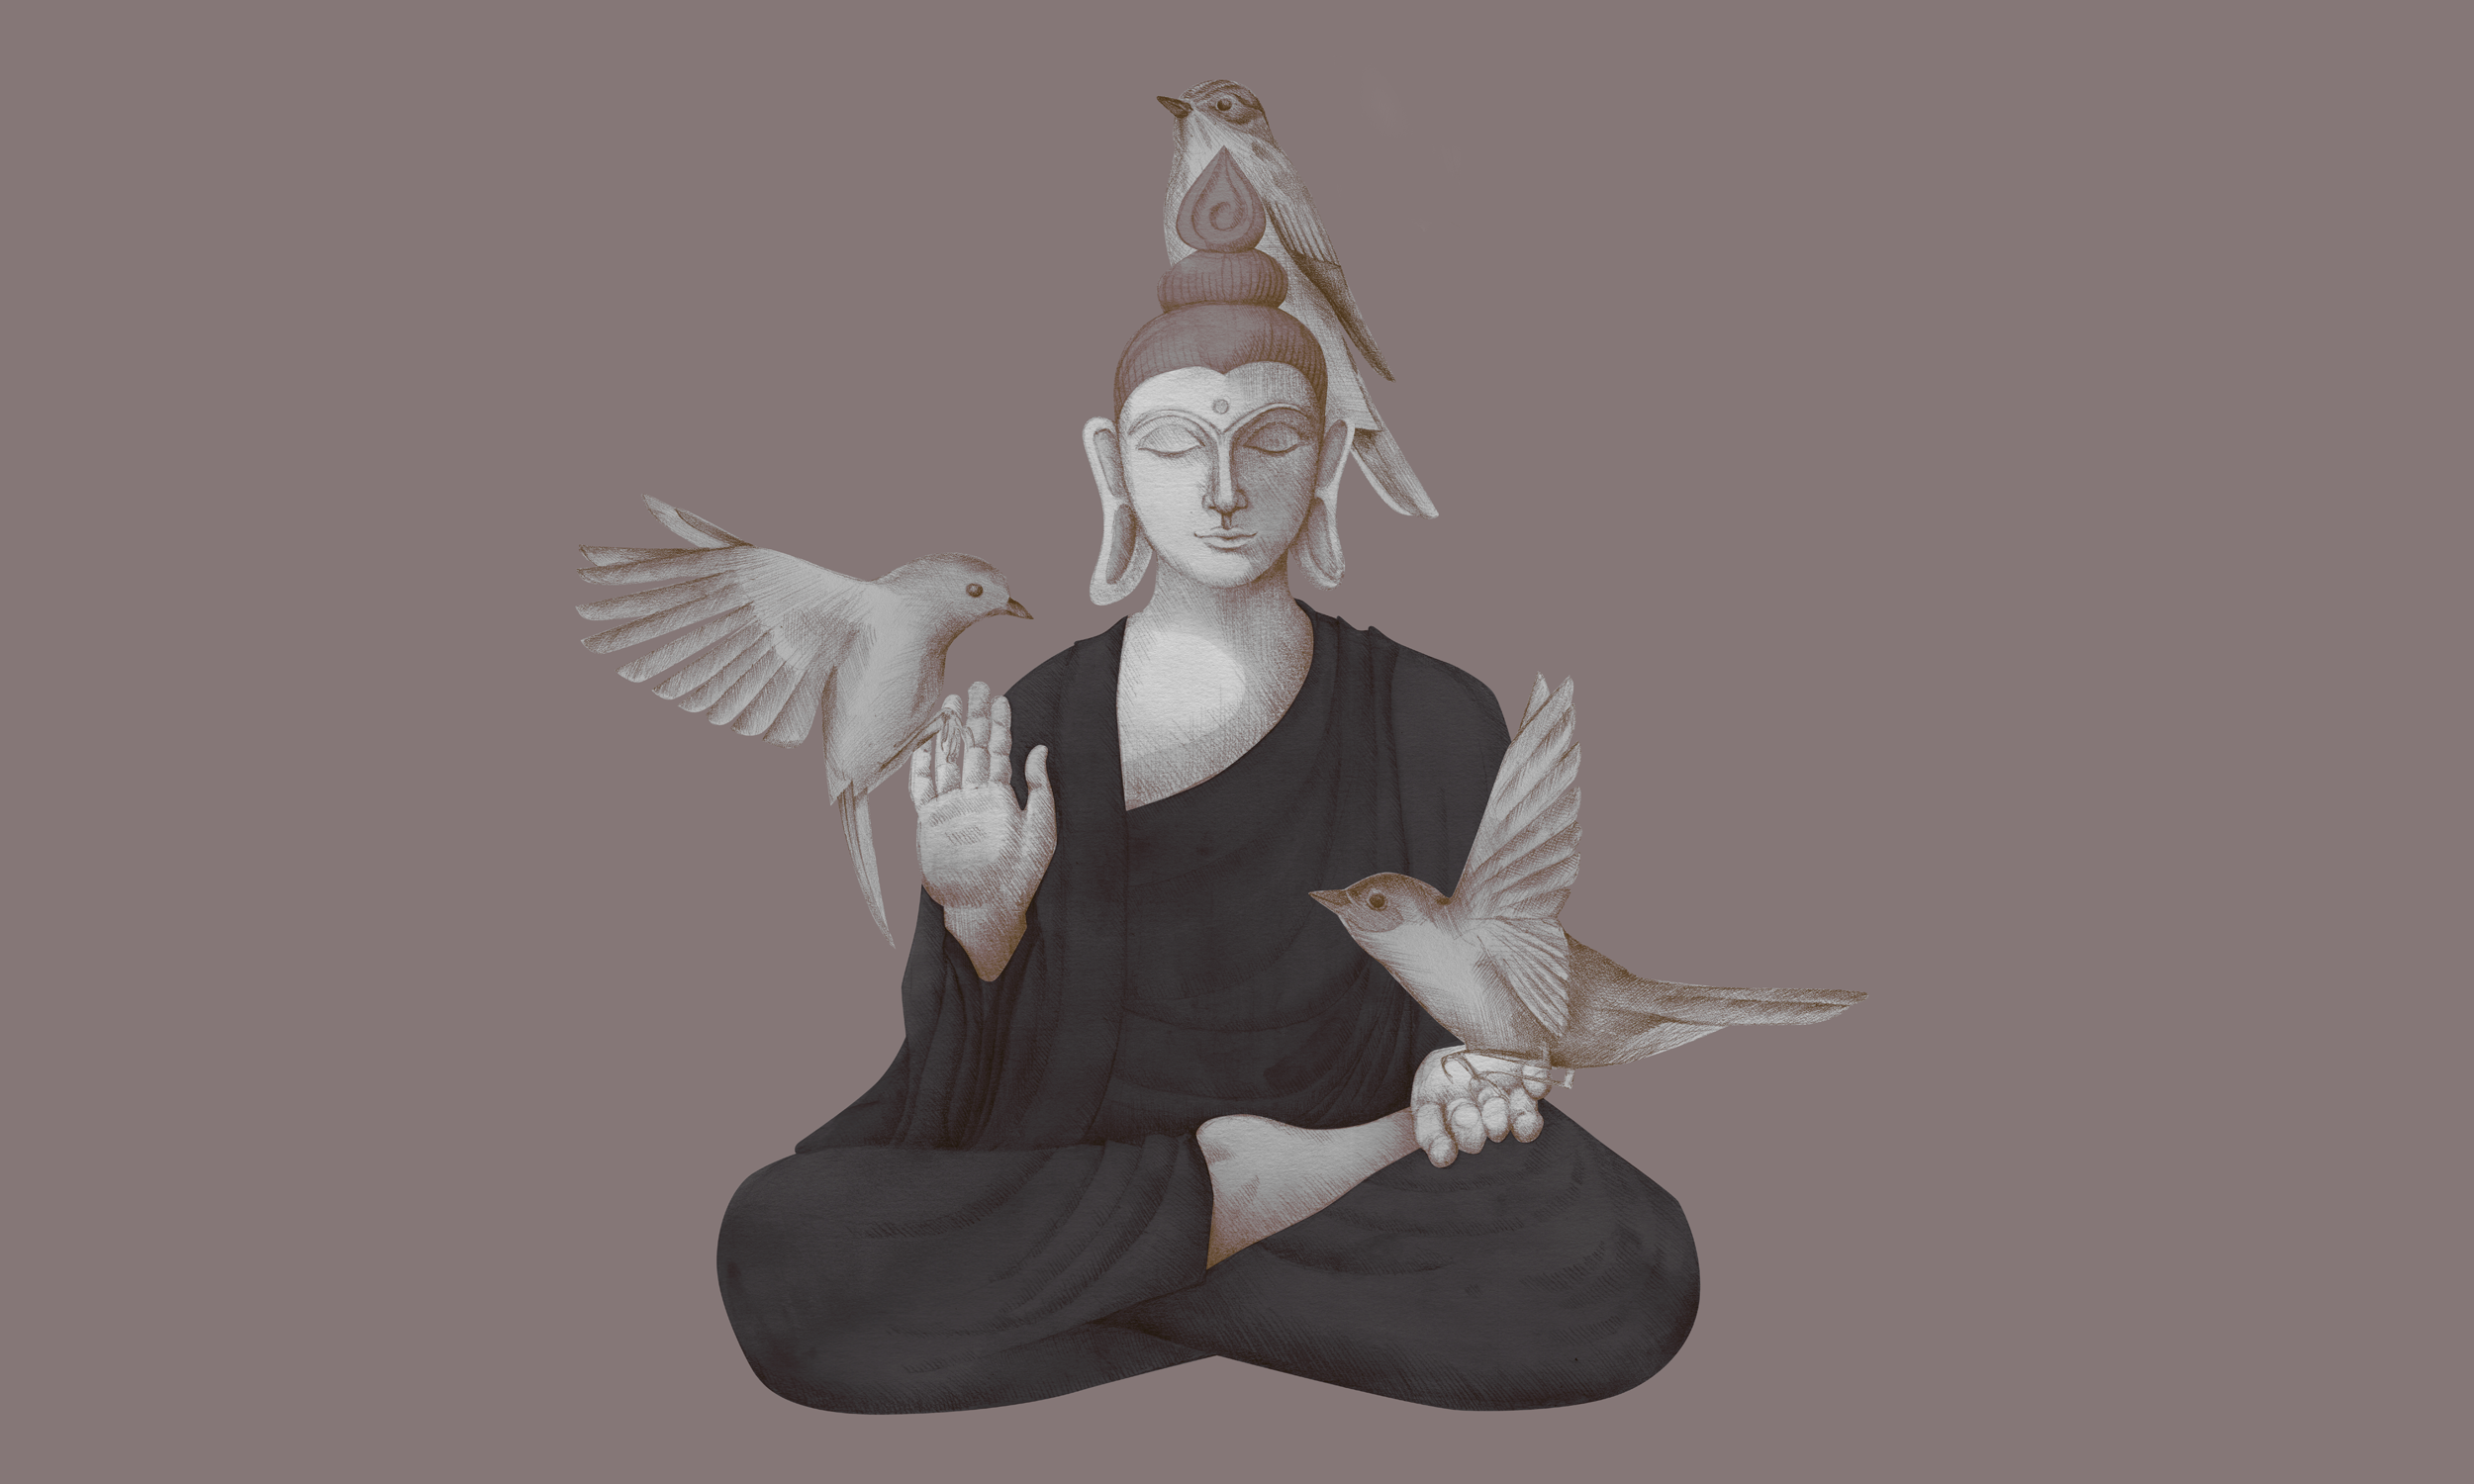 illustration_buddha_2500x1500_6